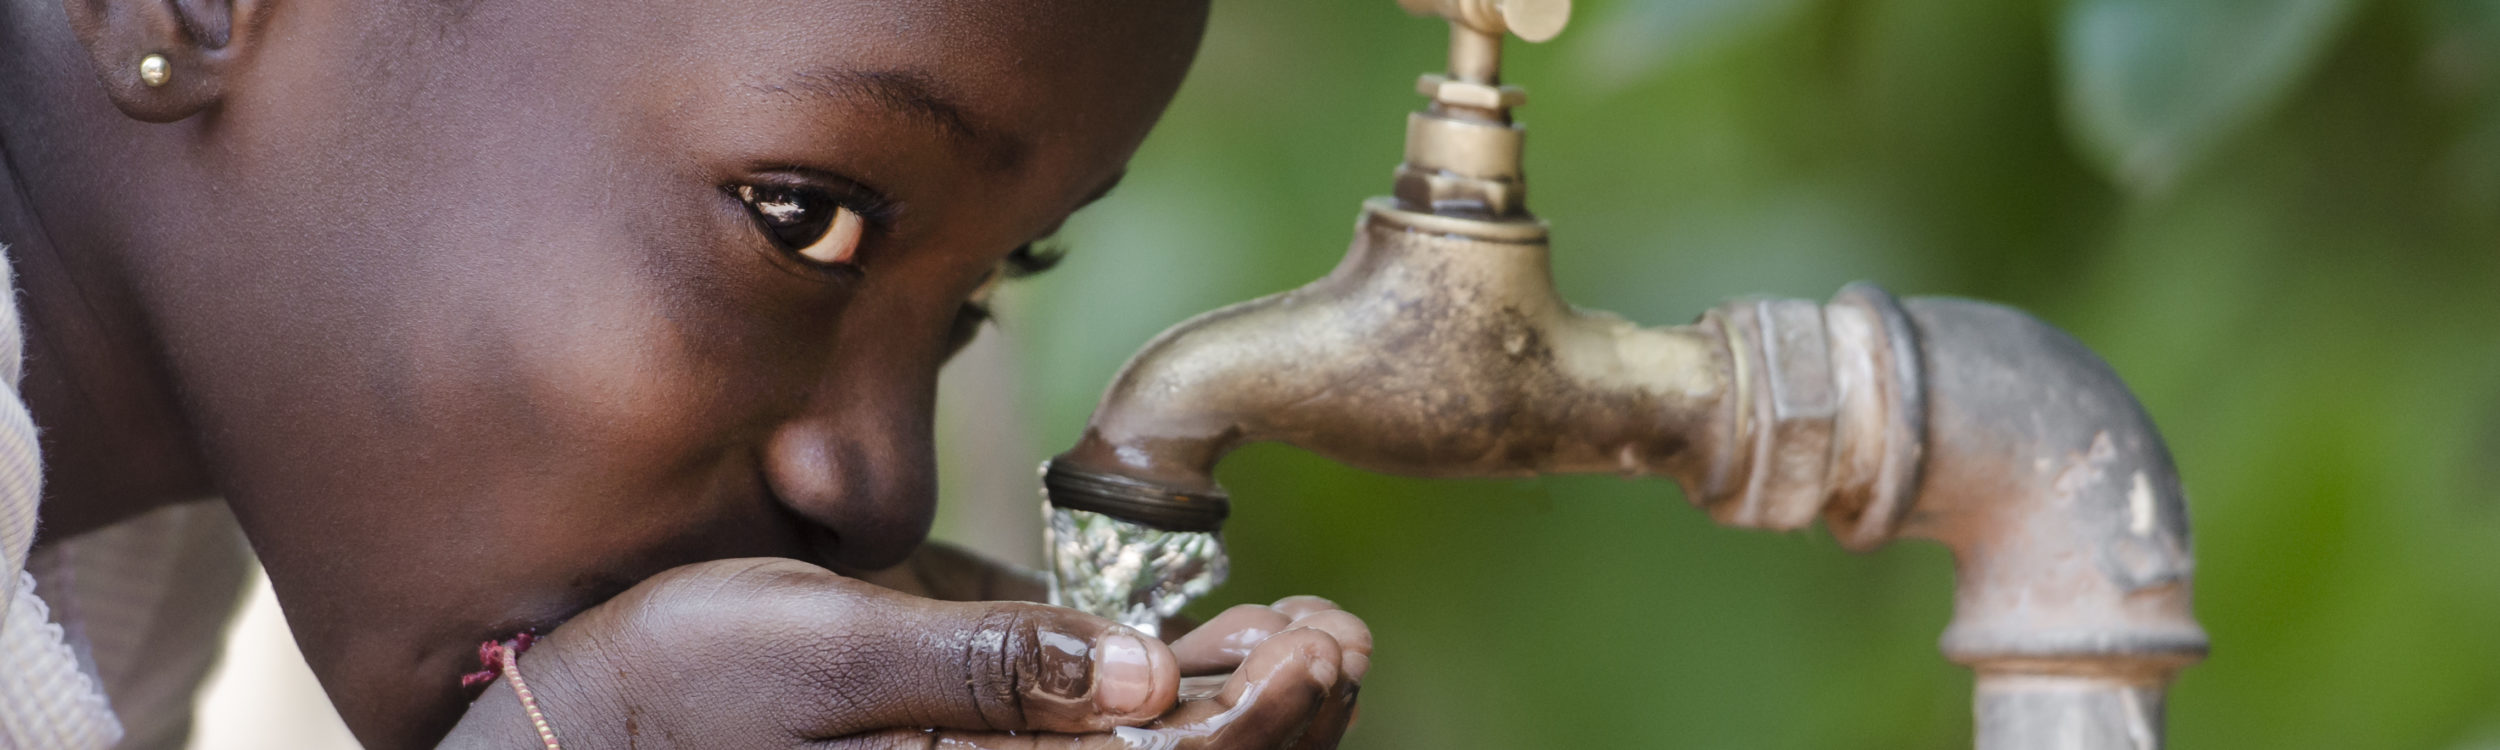 Finding My Passion Through Wine to Water: Achieving Clean, Accessible Water for All featured image